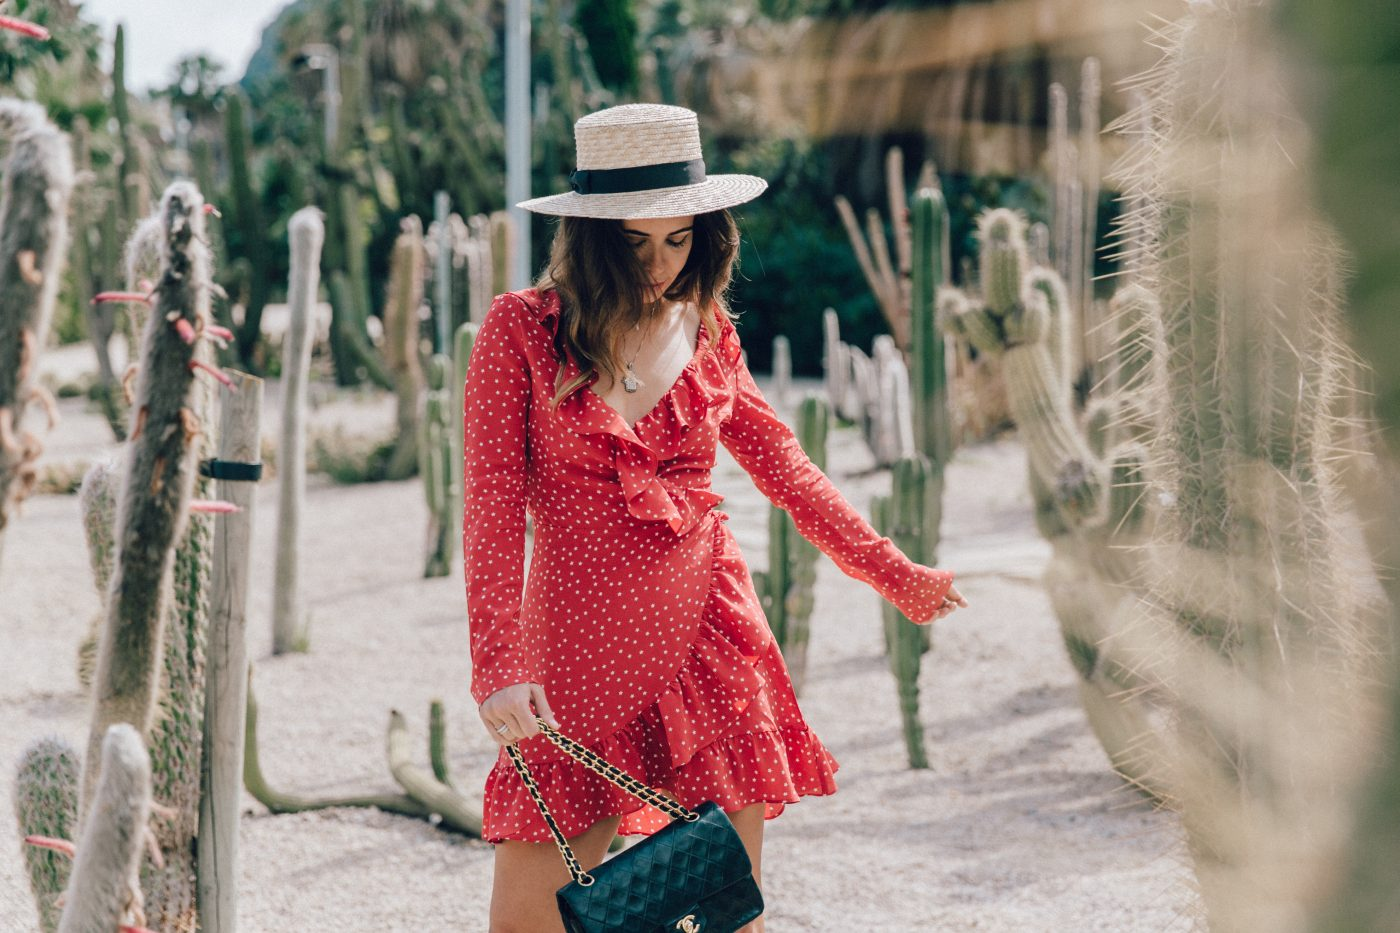 Realisation_Par_Dress-Star_Print-Red_Dress-Outfit-Catonier-Hat-Lack_Of_Color-Black_Sandals_Topshop-Barcelona-Collage_Vintage-Mossen_Gardens-108